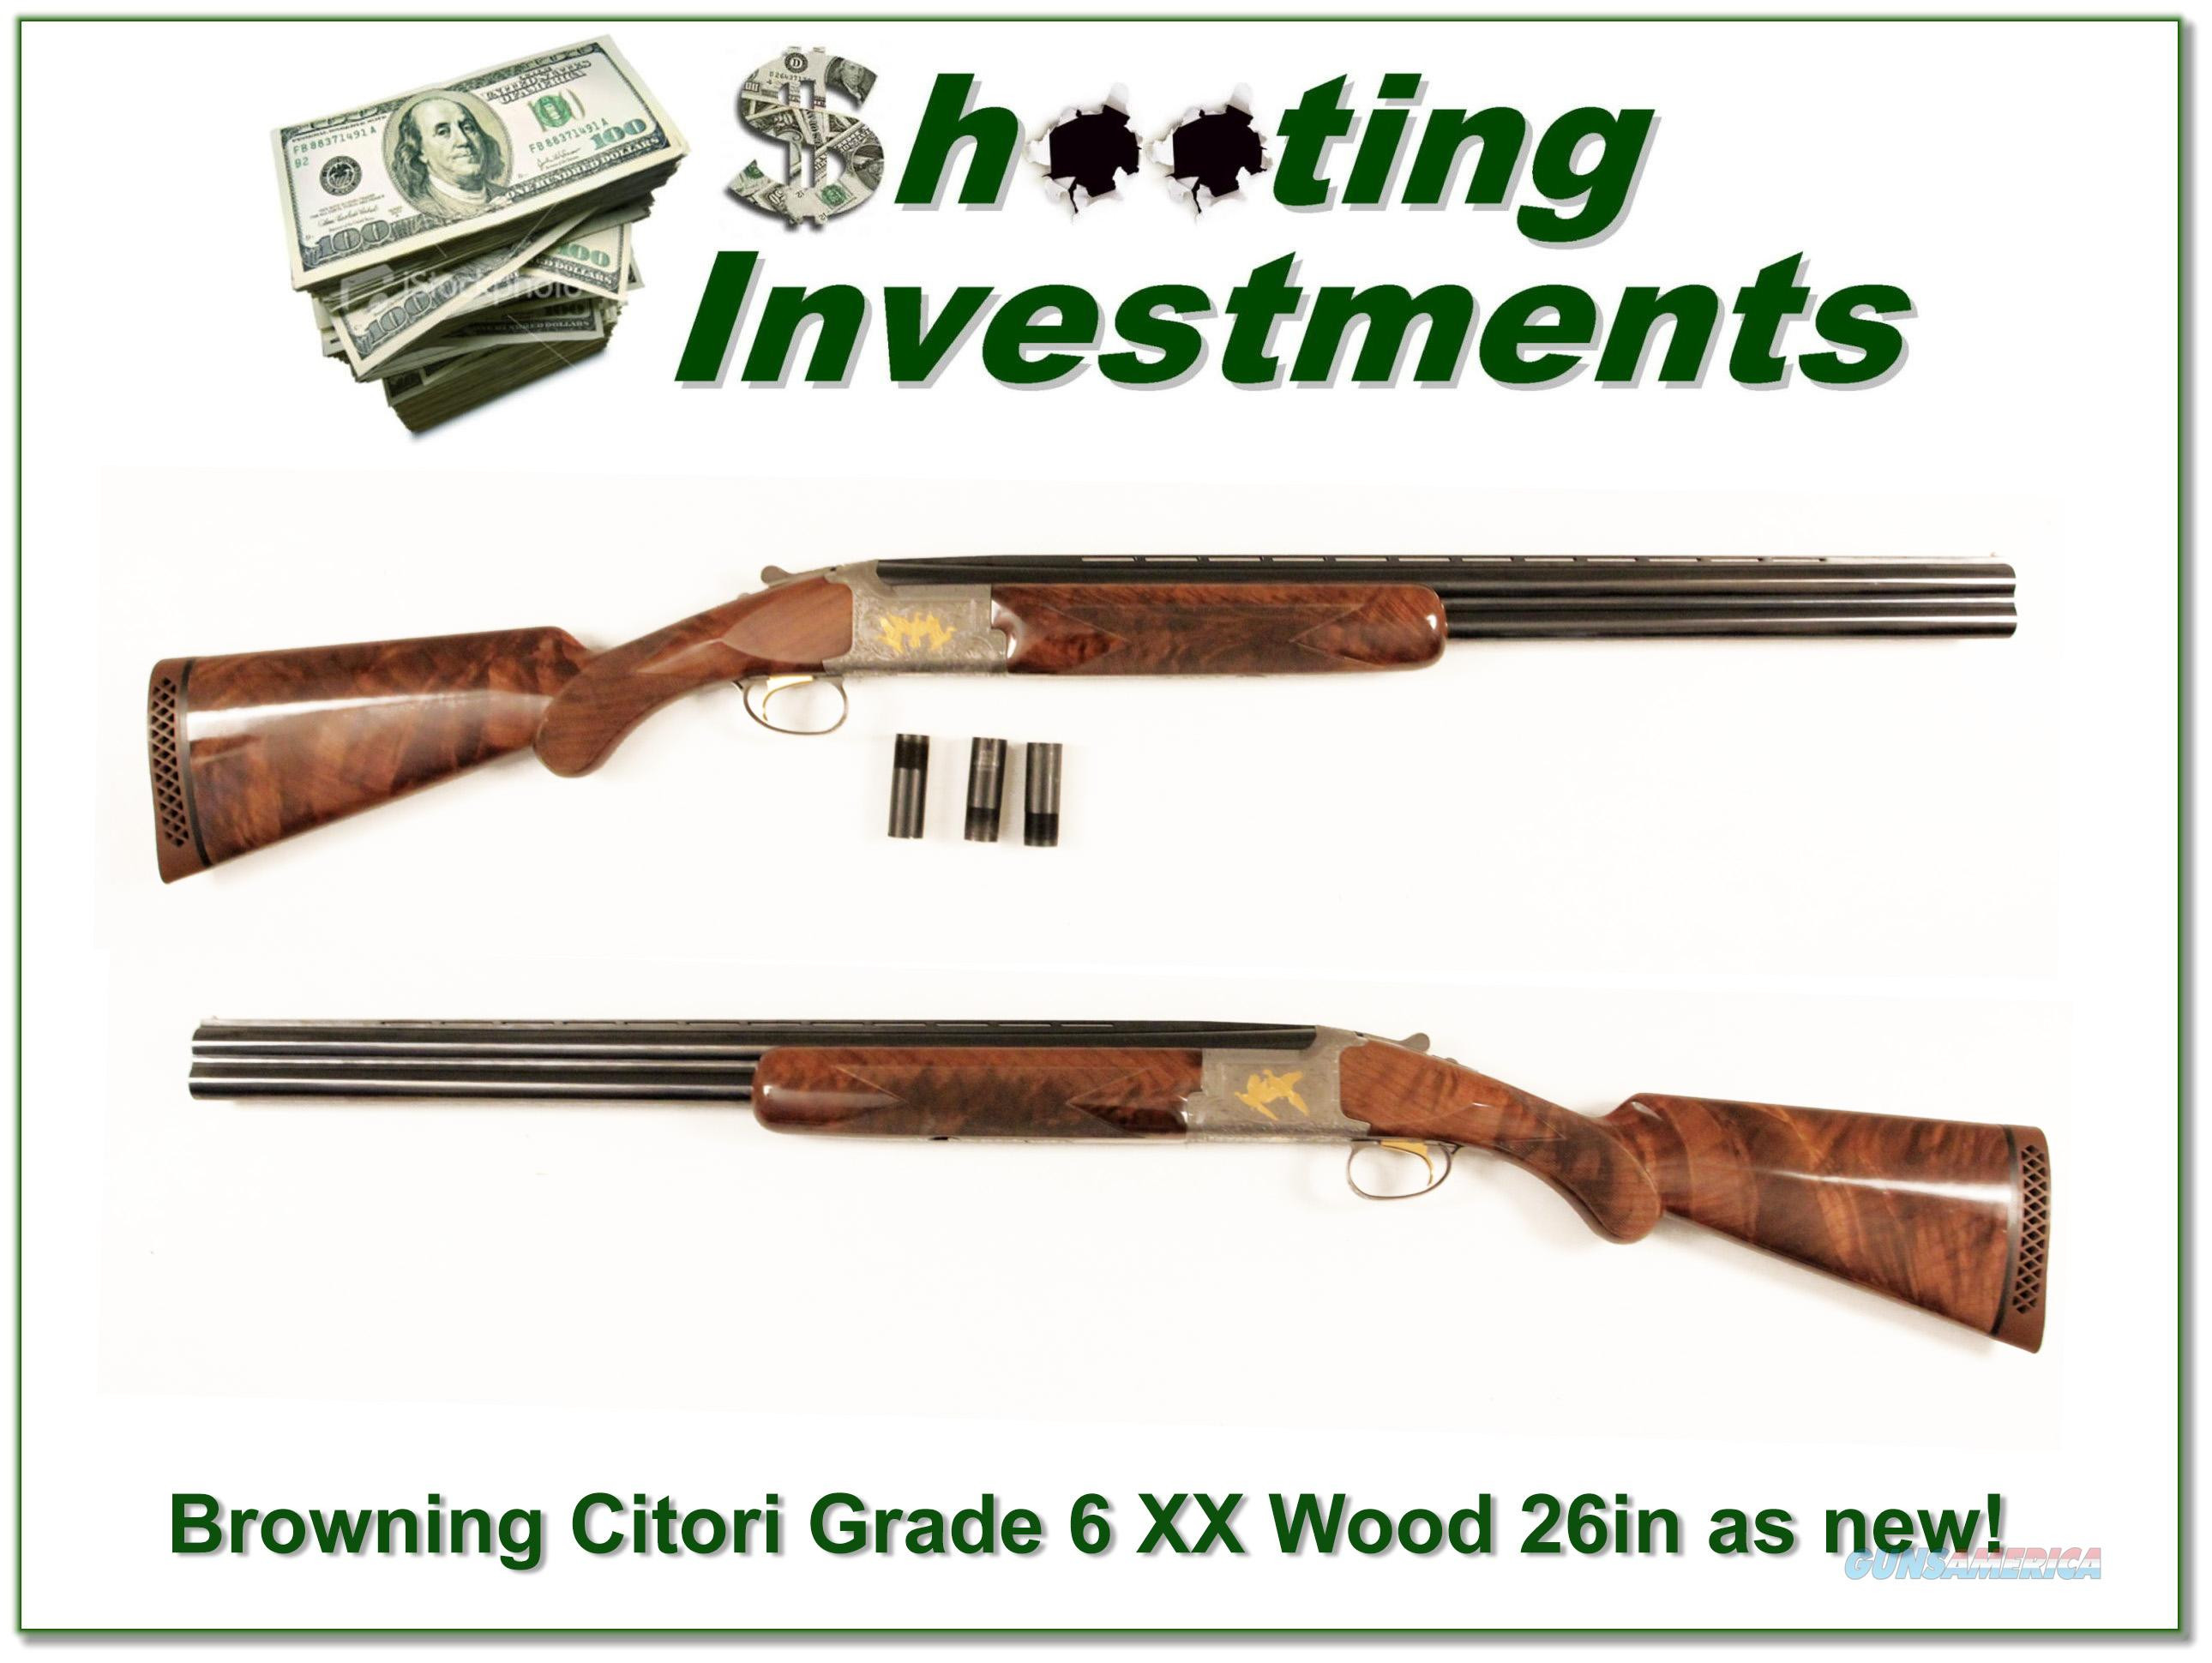 Browning Citori Grade VI 12 Gauge XX Wood as new!  Guns > Shotguns > Browning Shotguns > Over Unders > Citori > Hunting